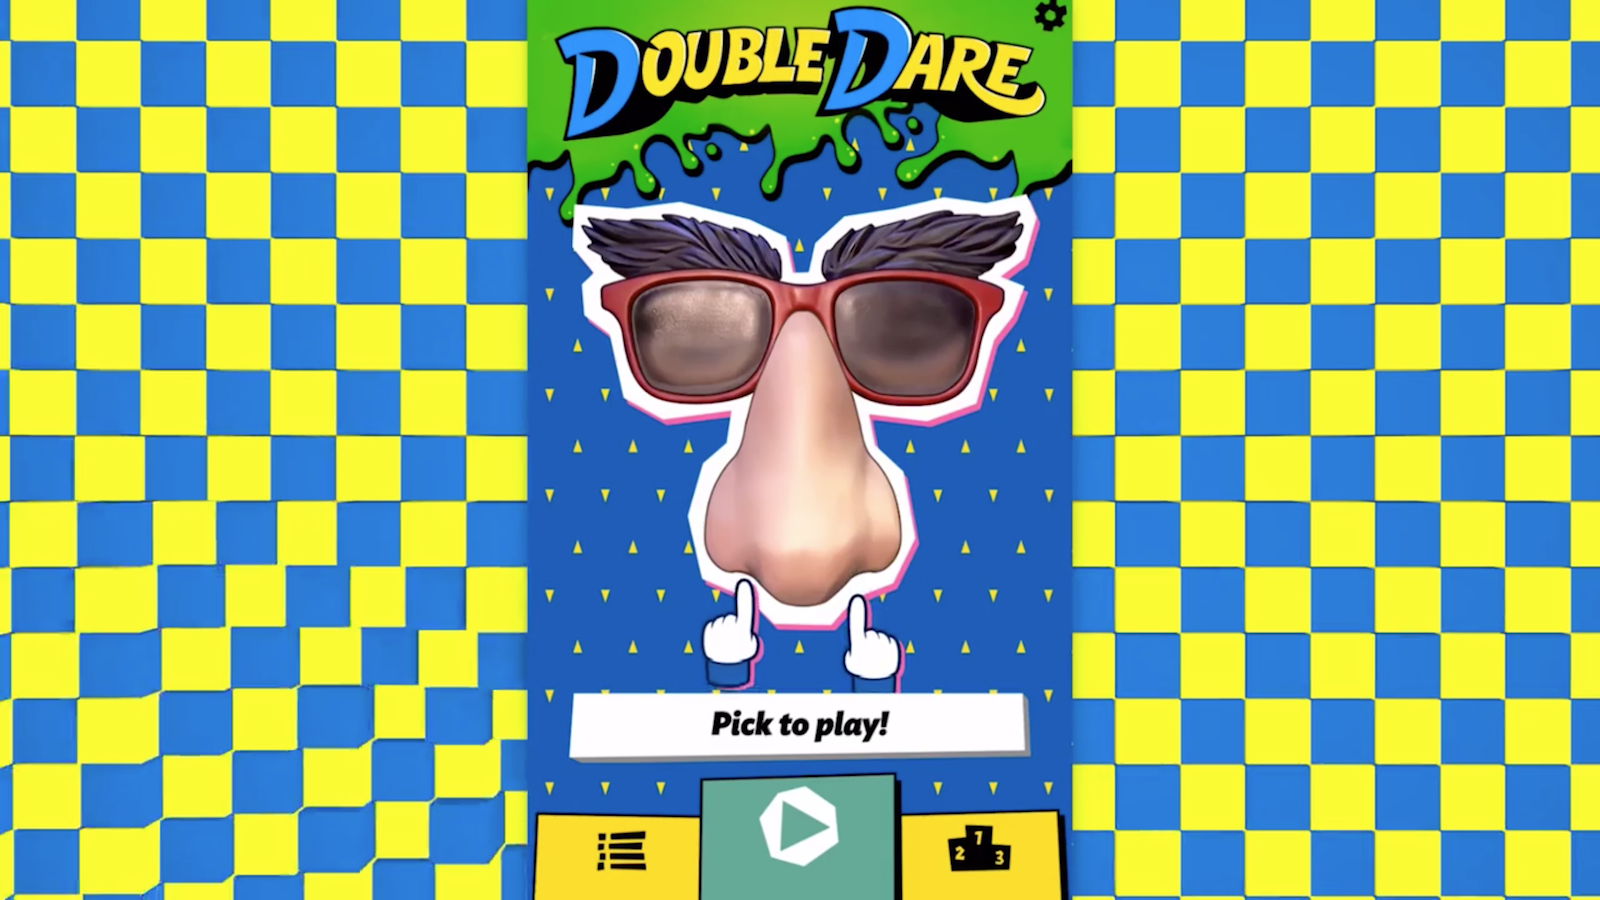 Nickelodeon's 'Double Dare' finds new life in Facebook